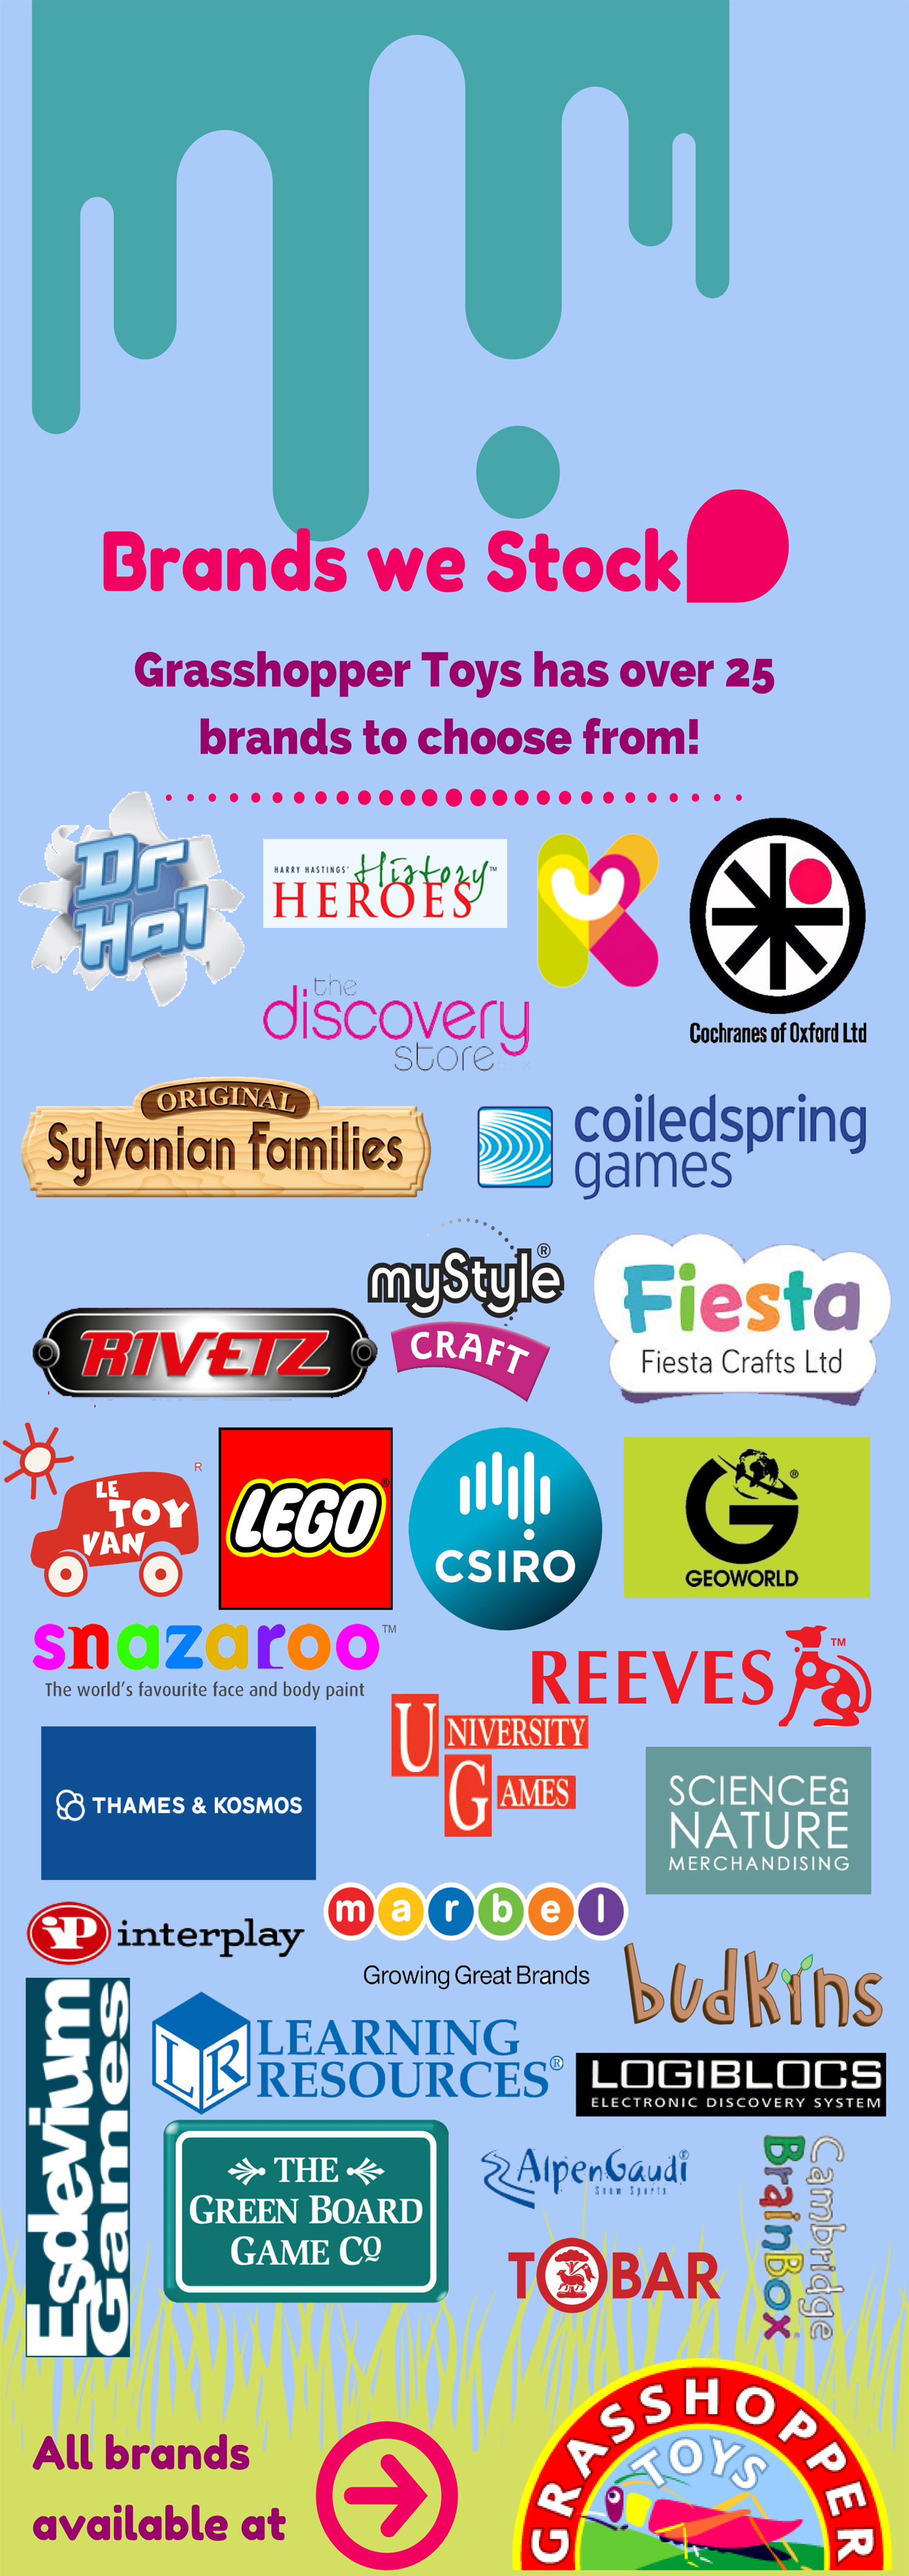 #Infographic - The Brands Grasshopper Toys stock!